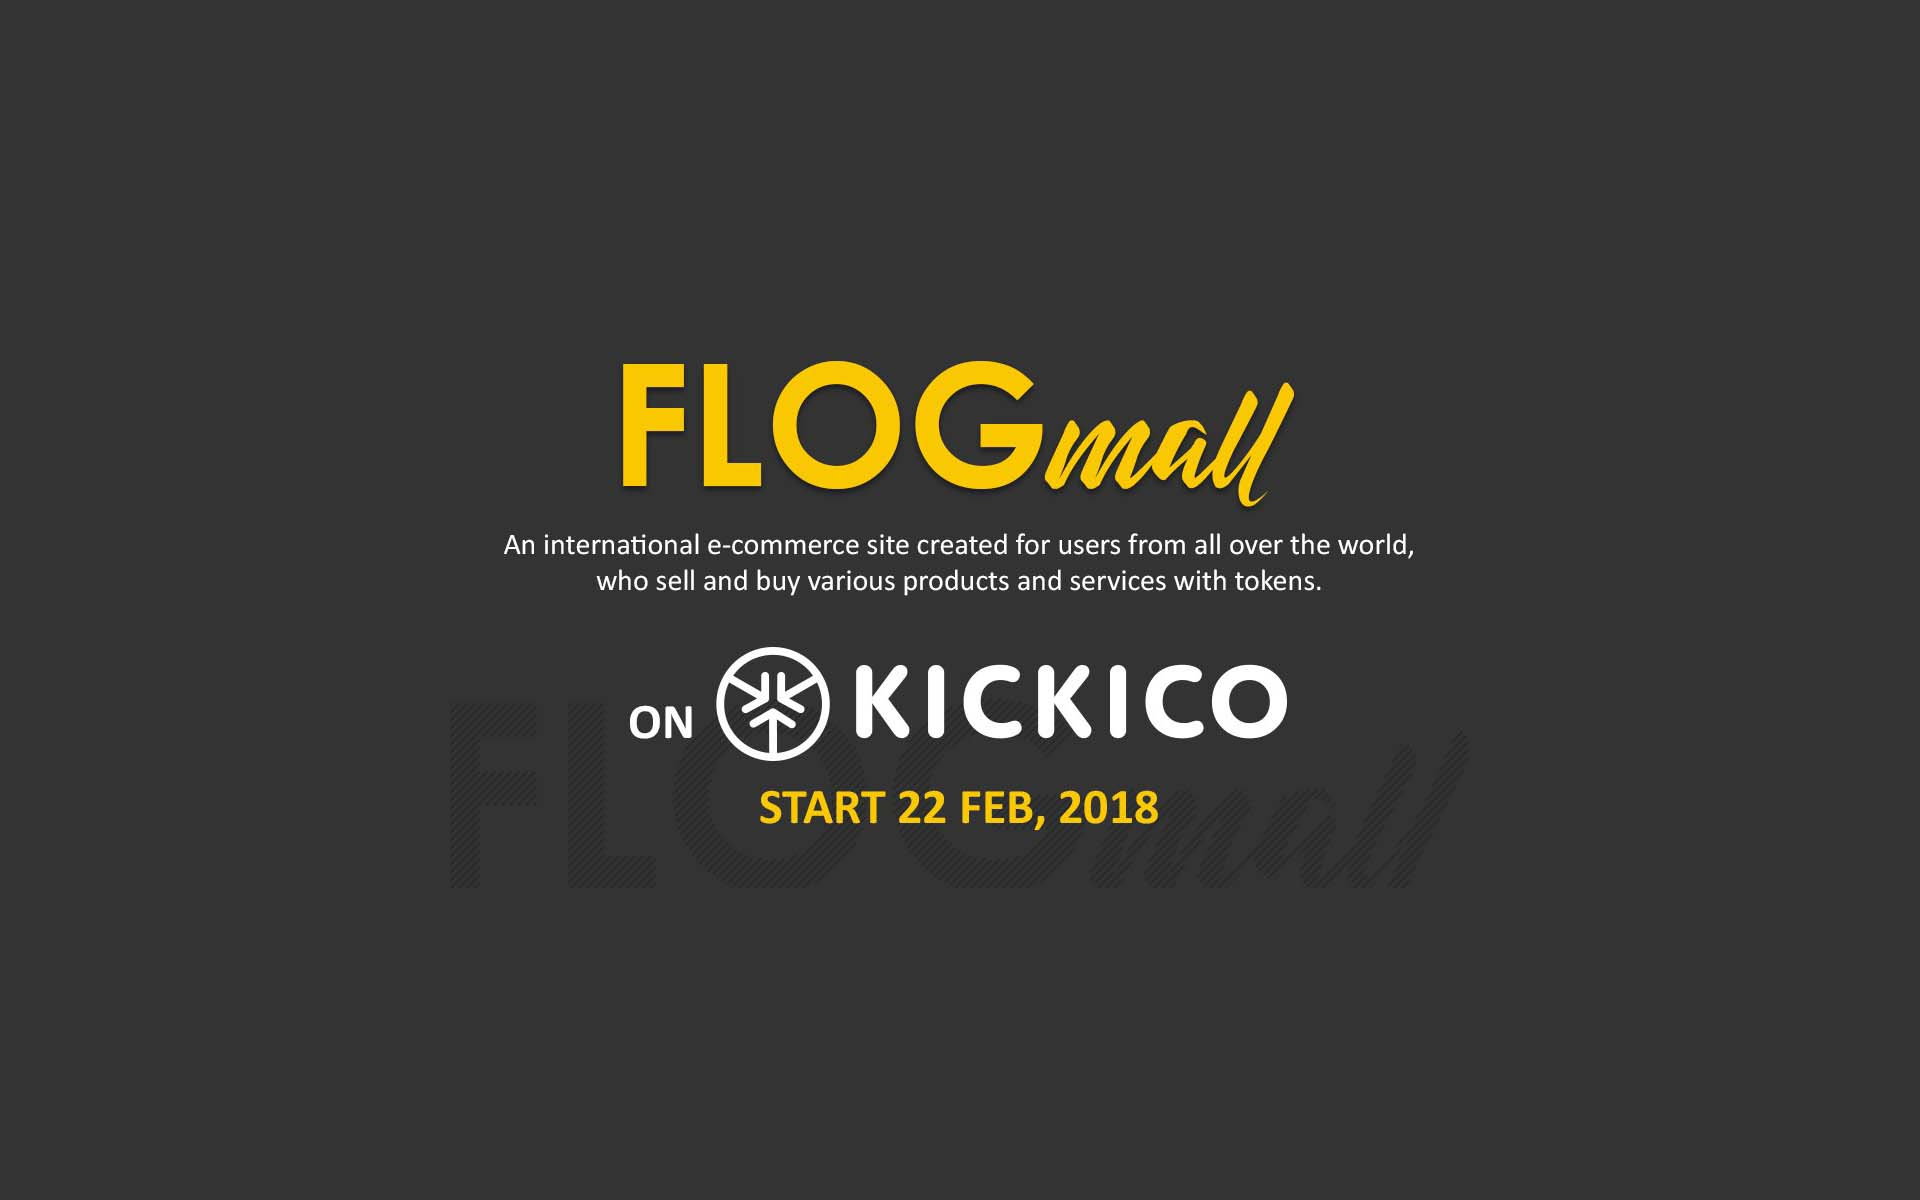 With Unique Hedge Feature for Investors, FLOGmall Launches ICO on KICKICO on February 22